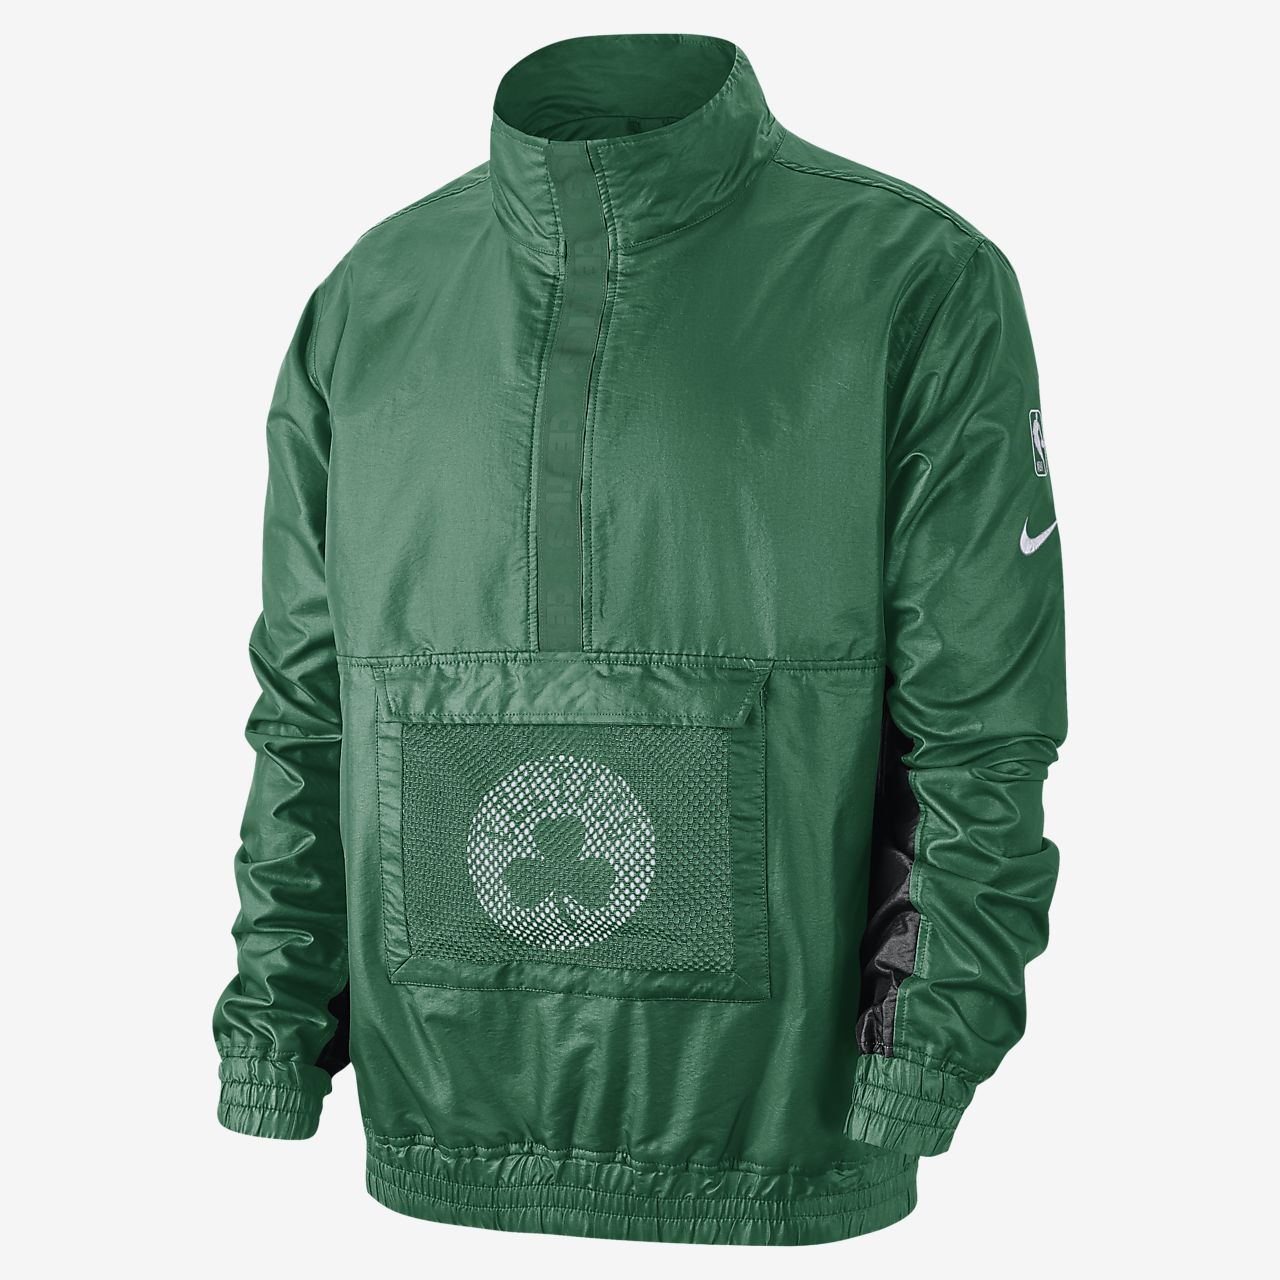 Boston Celtics Nike Men's Lightweight NBA Jacket